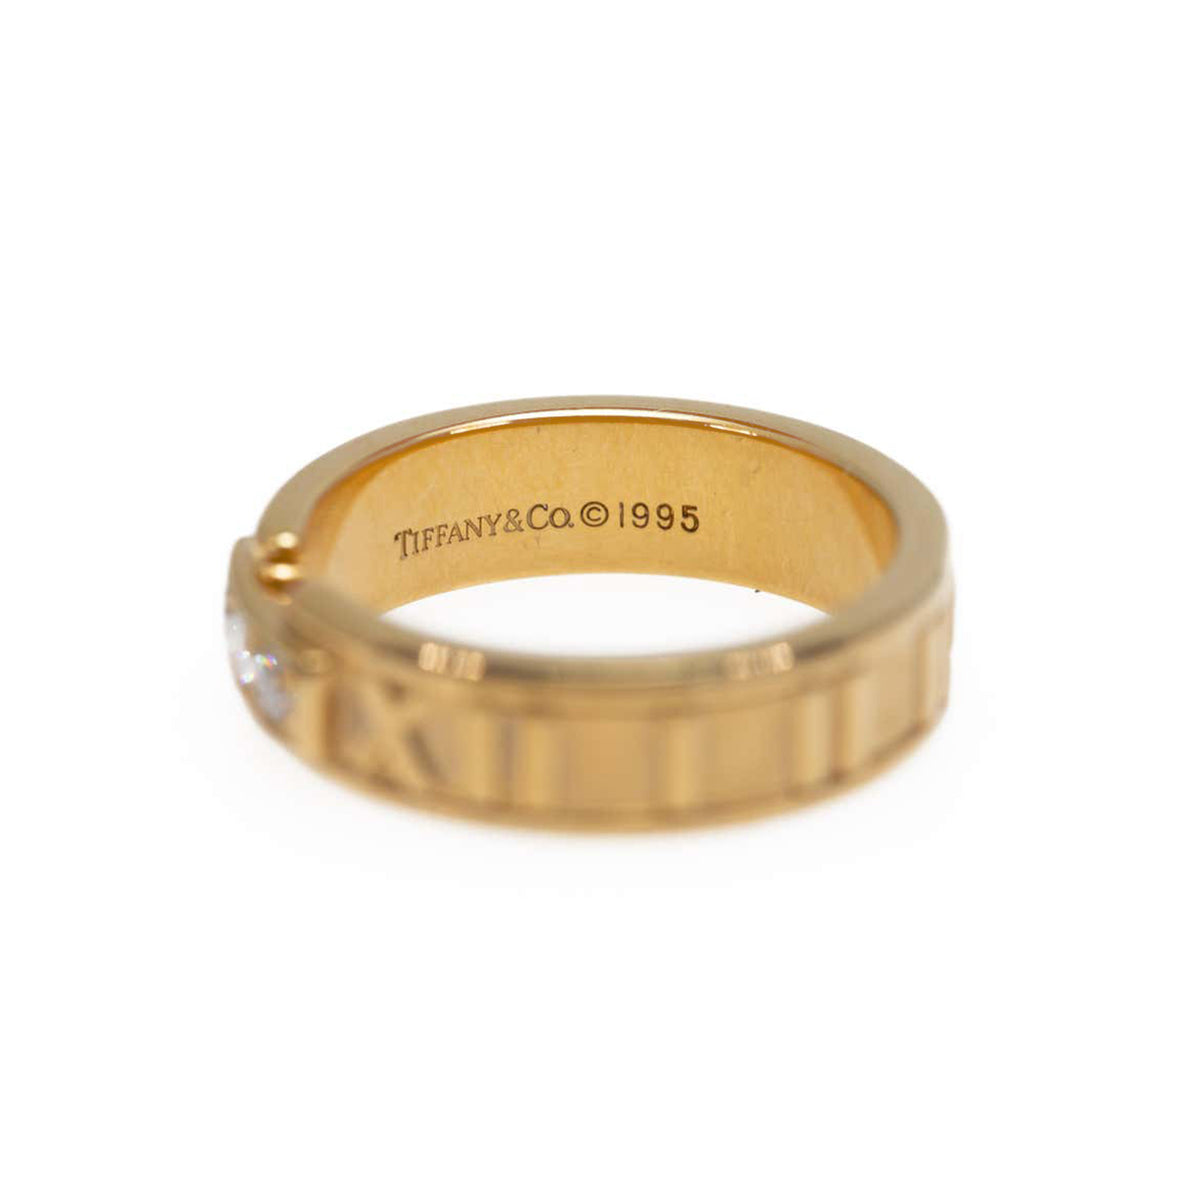 Tiffany & Co. Atlas Roman Numeral Wedding Diamond Ring in 18 Karat Gold